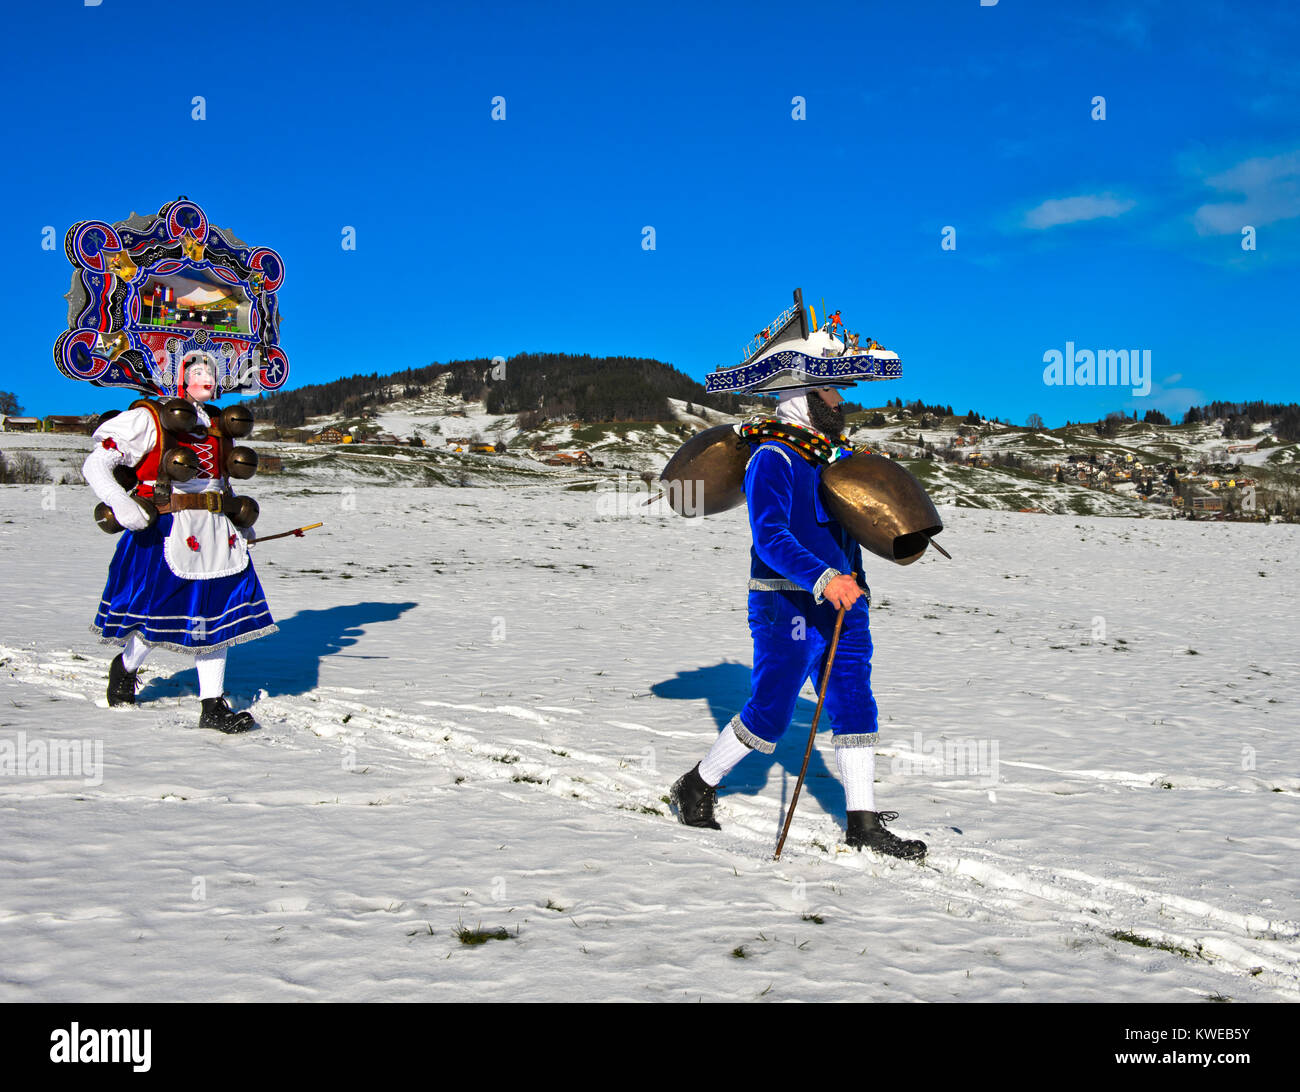 A Beautiful Chlaus and Schellenklaus, St Sylvester mummers, at Old Sylvester, Urnäsch, Appenzell Ausserrhoden, - Stock Image